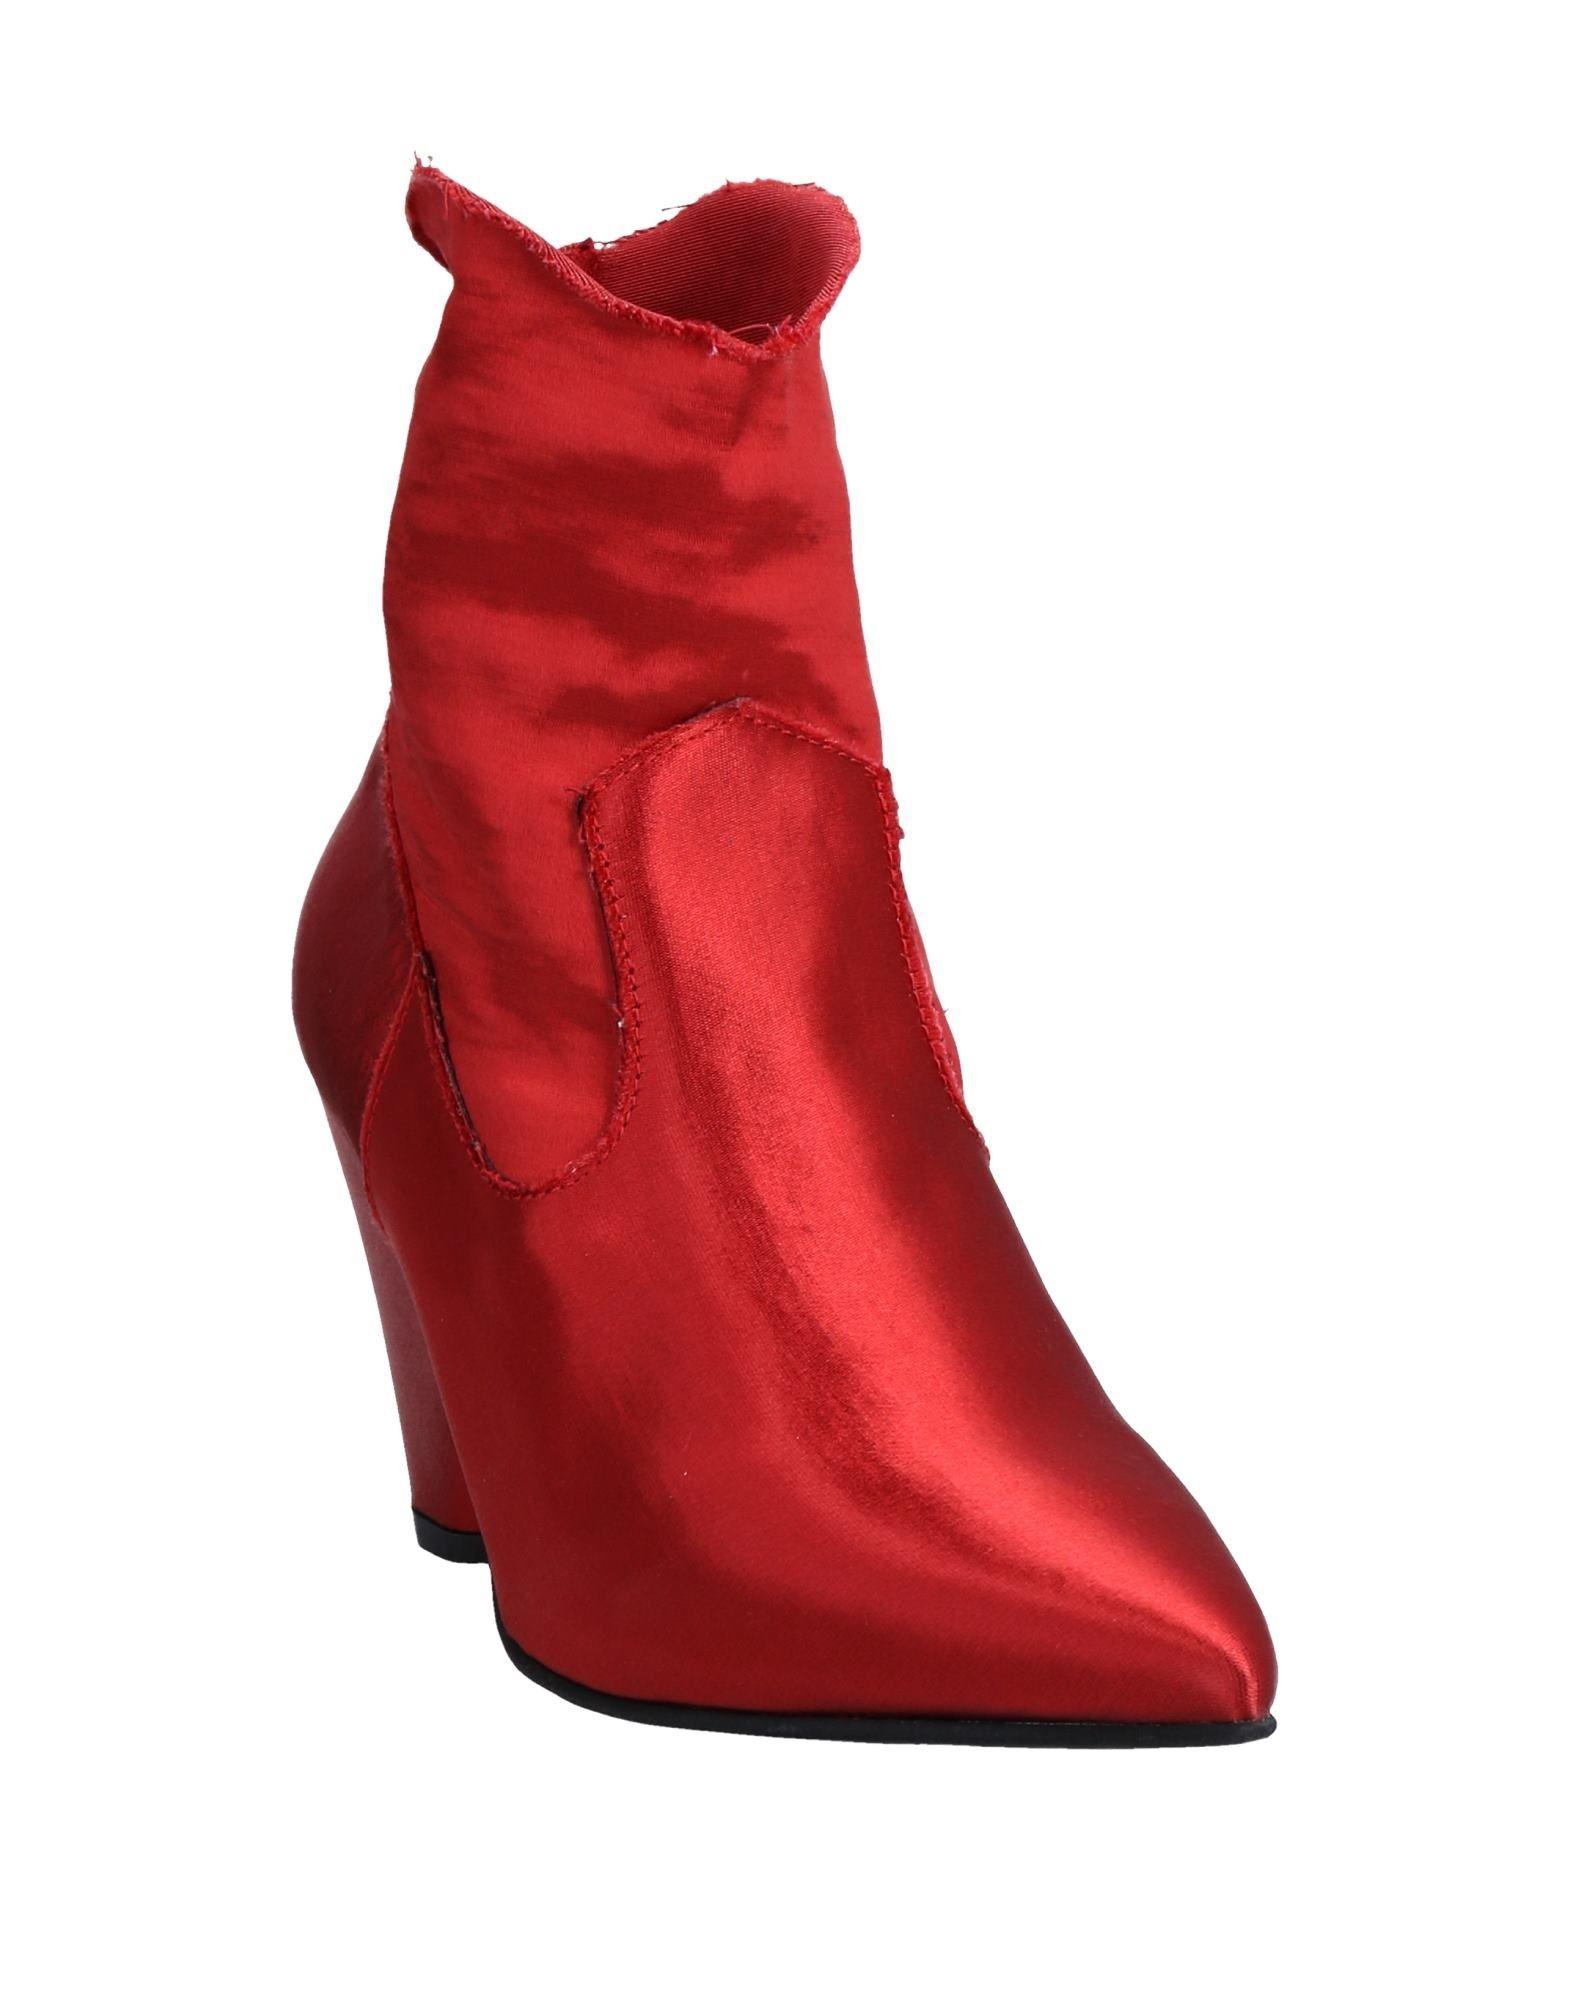 fb340d98d66 Women's Red Ankle Boots